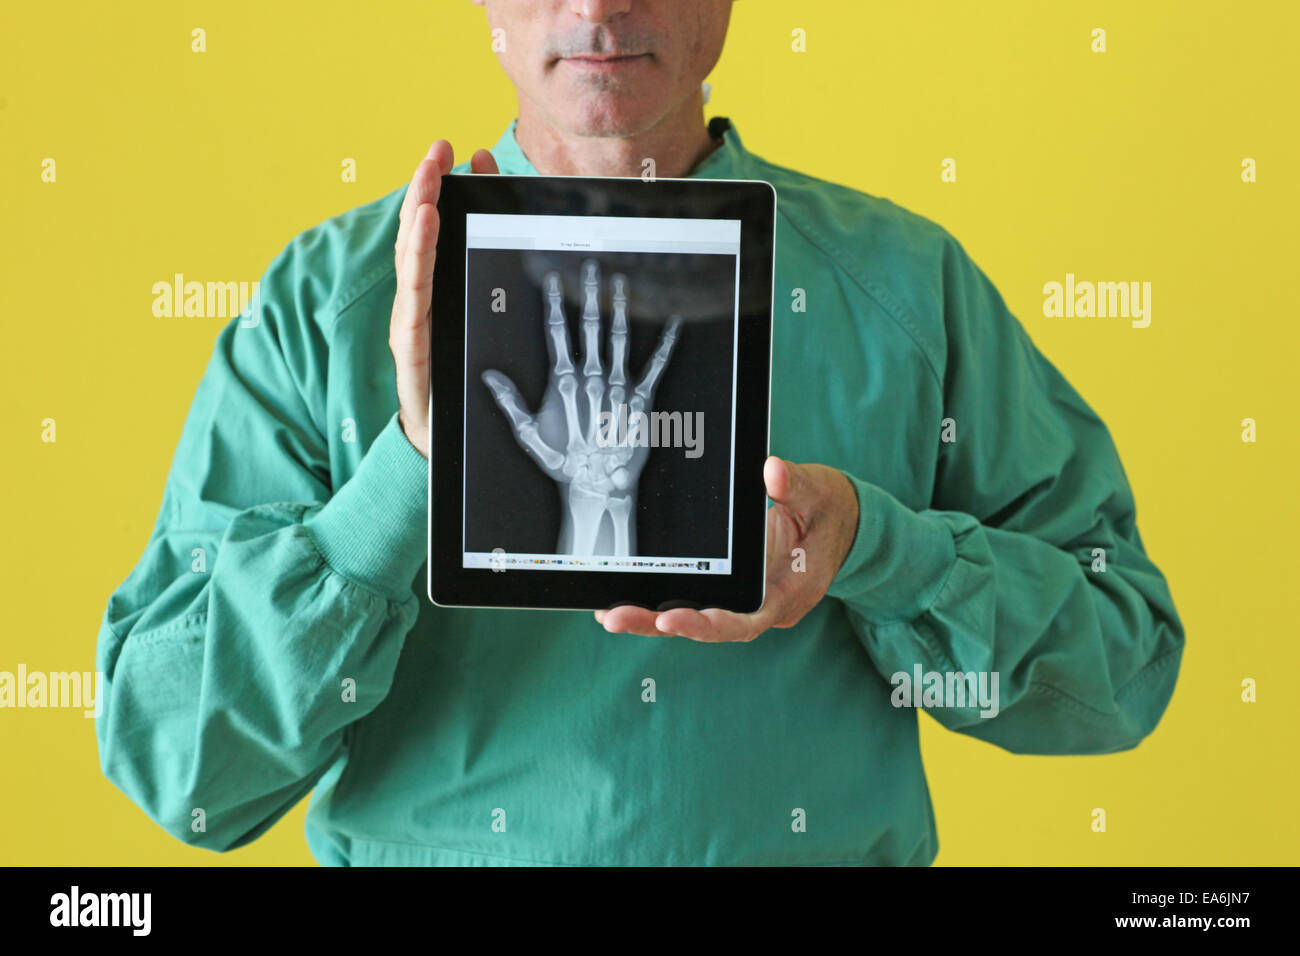 Surgeon holding tablet showing x-ray - Stock Image